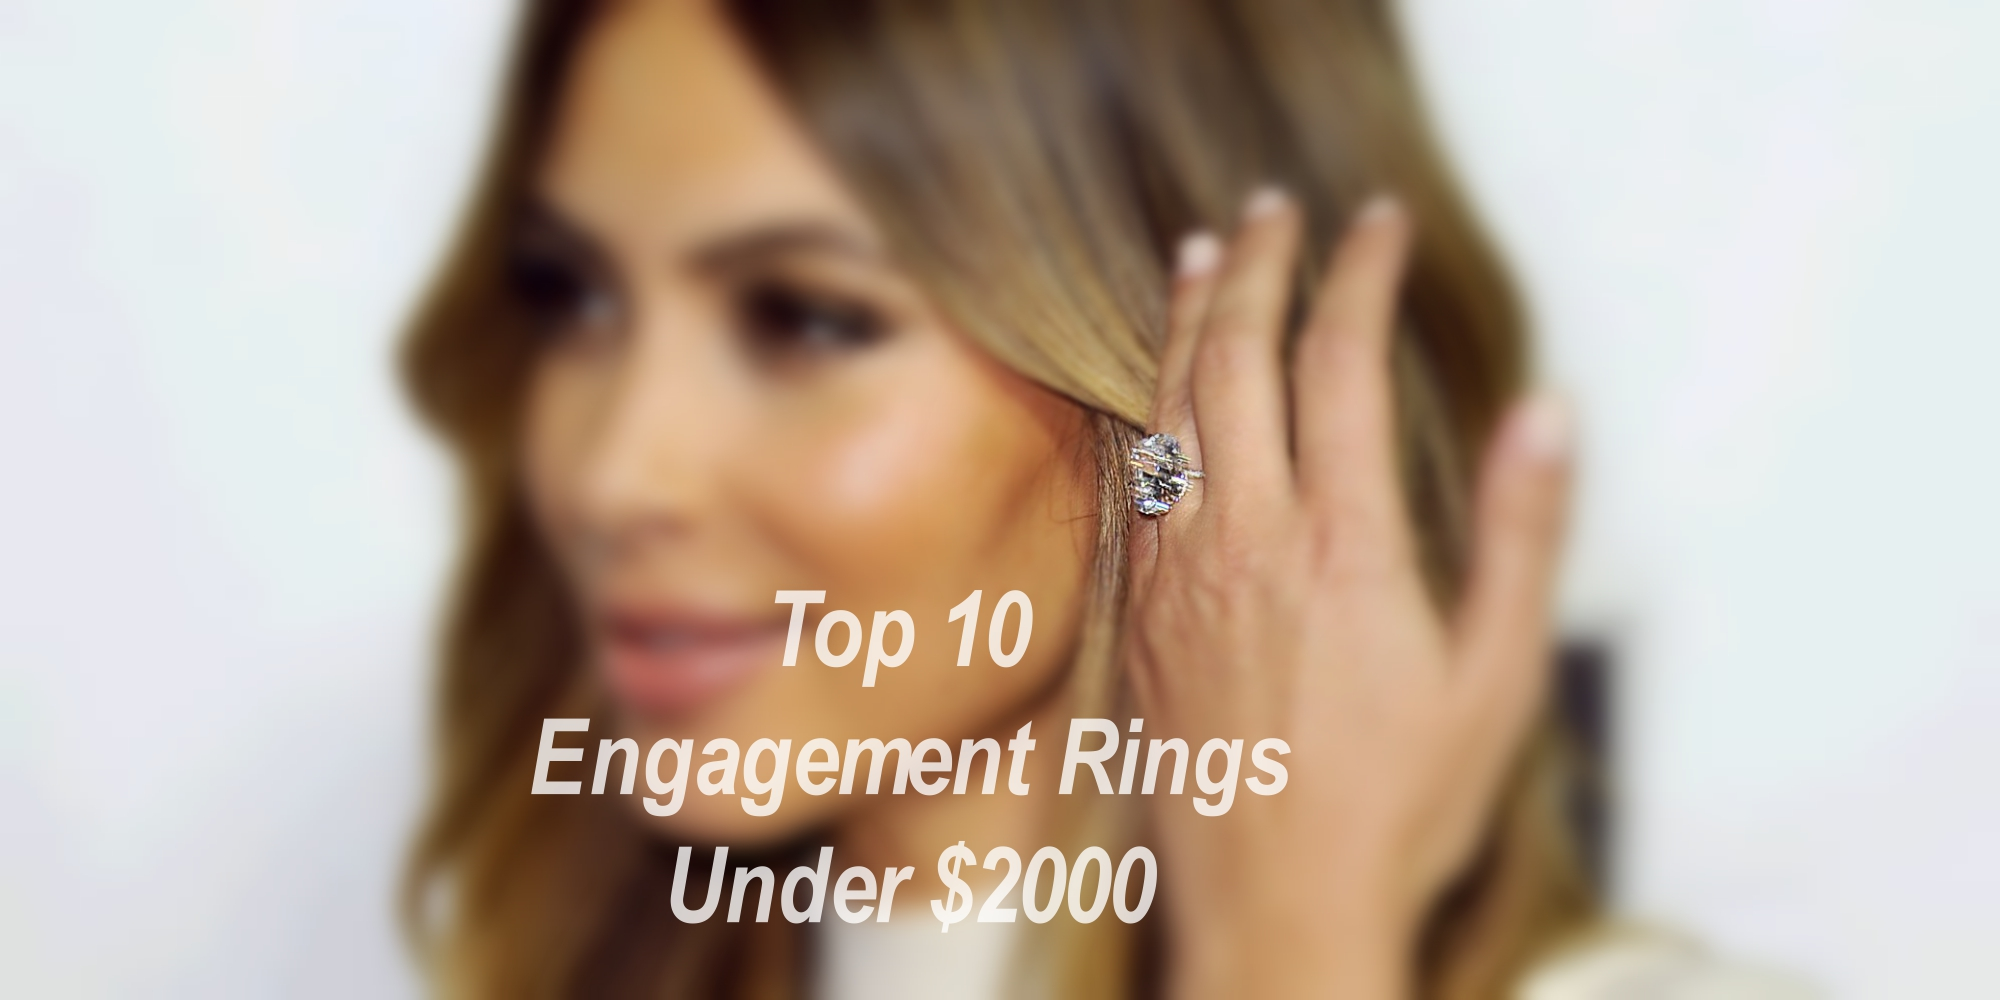 Top 10 Engagement Rings Under $2000 _Sumuduni Gems